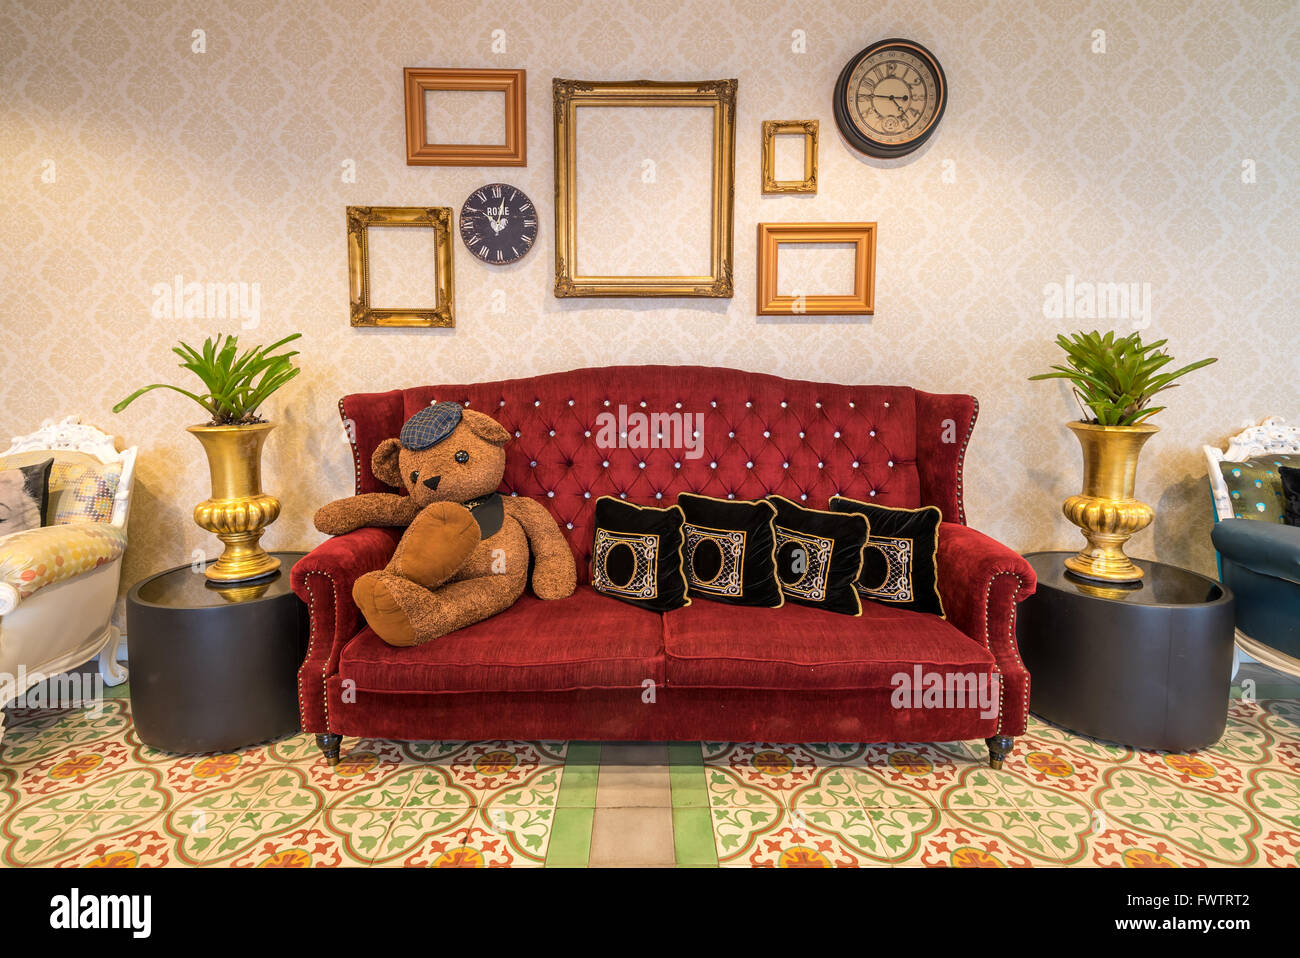 Red sofa couch in morocco style room Stock Photo: 101963794 - Alamy